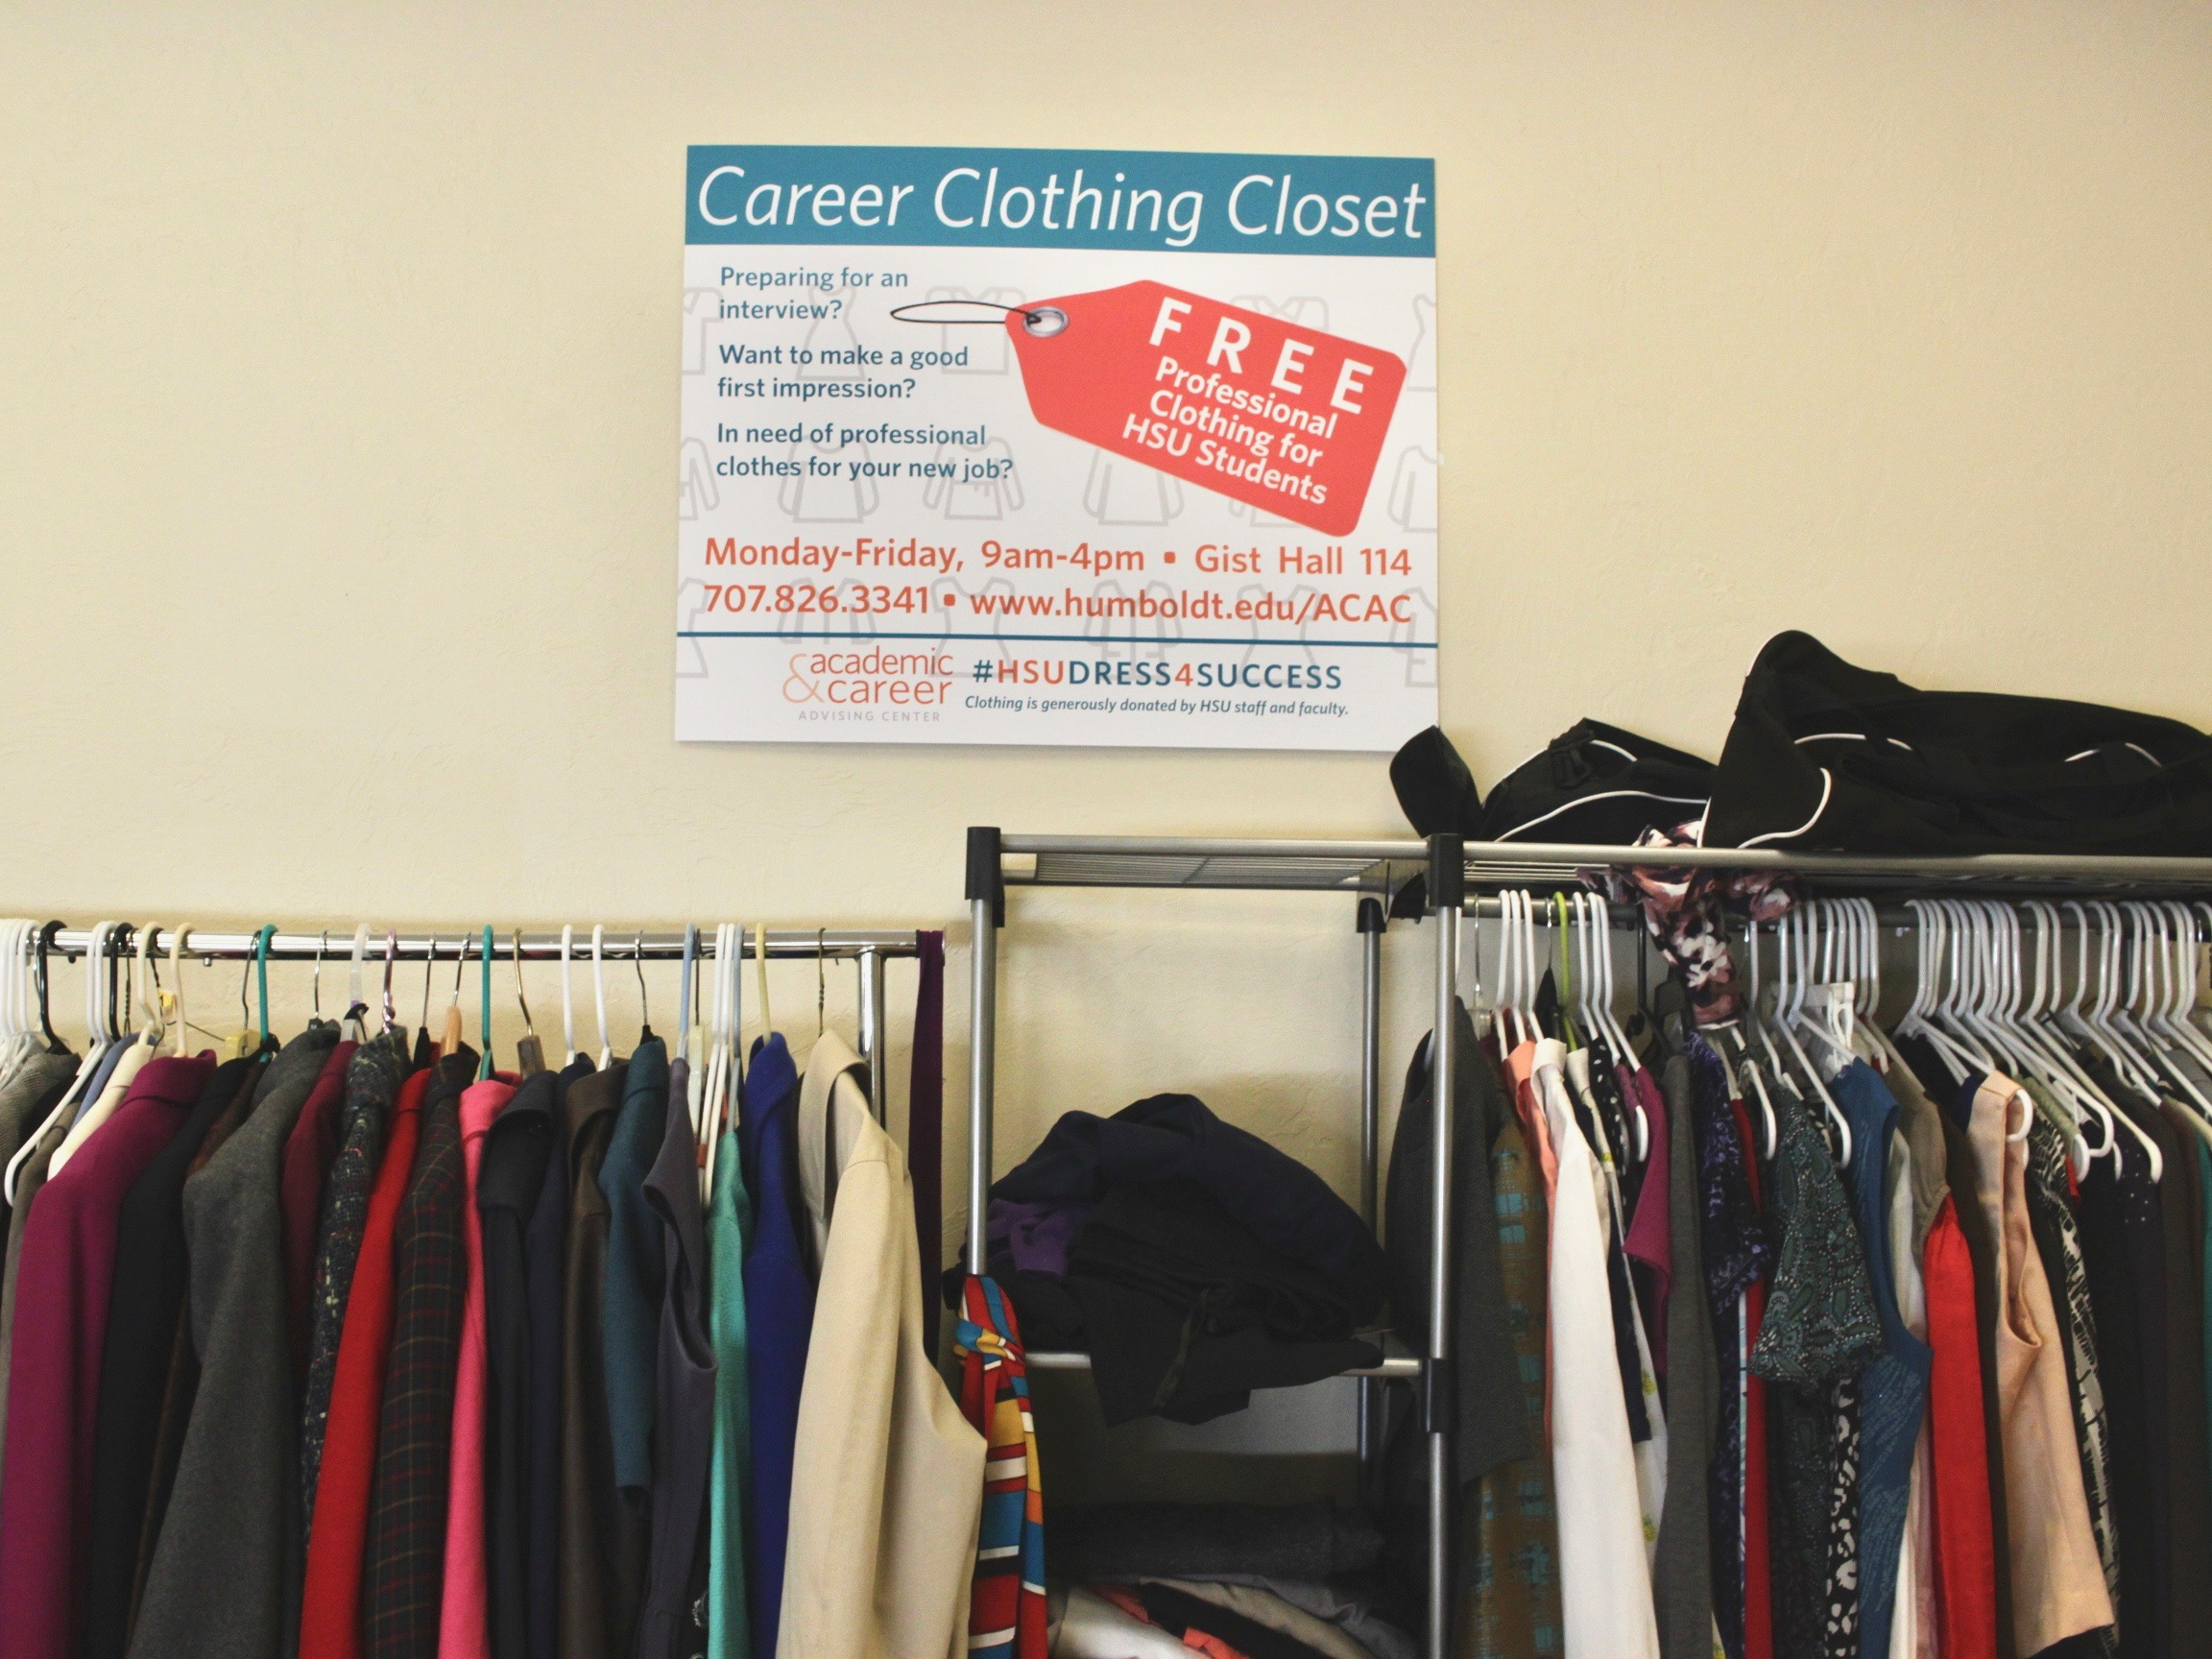 A photo of our Career Clothing Closet in our center where students can get free professional clothing.